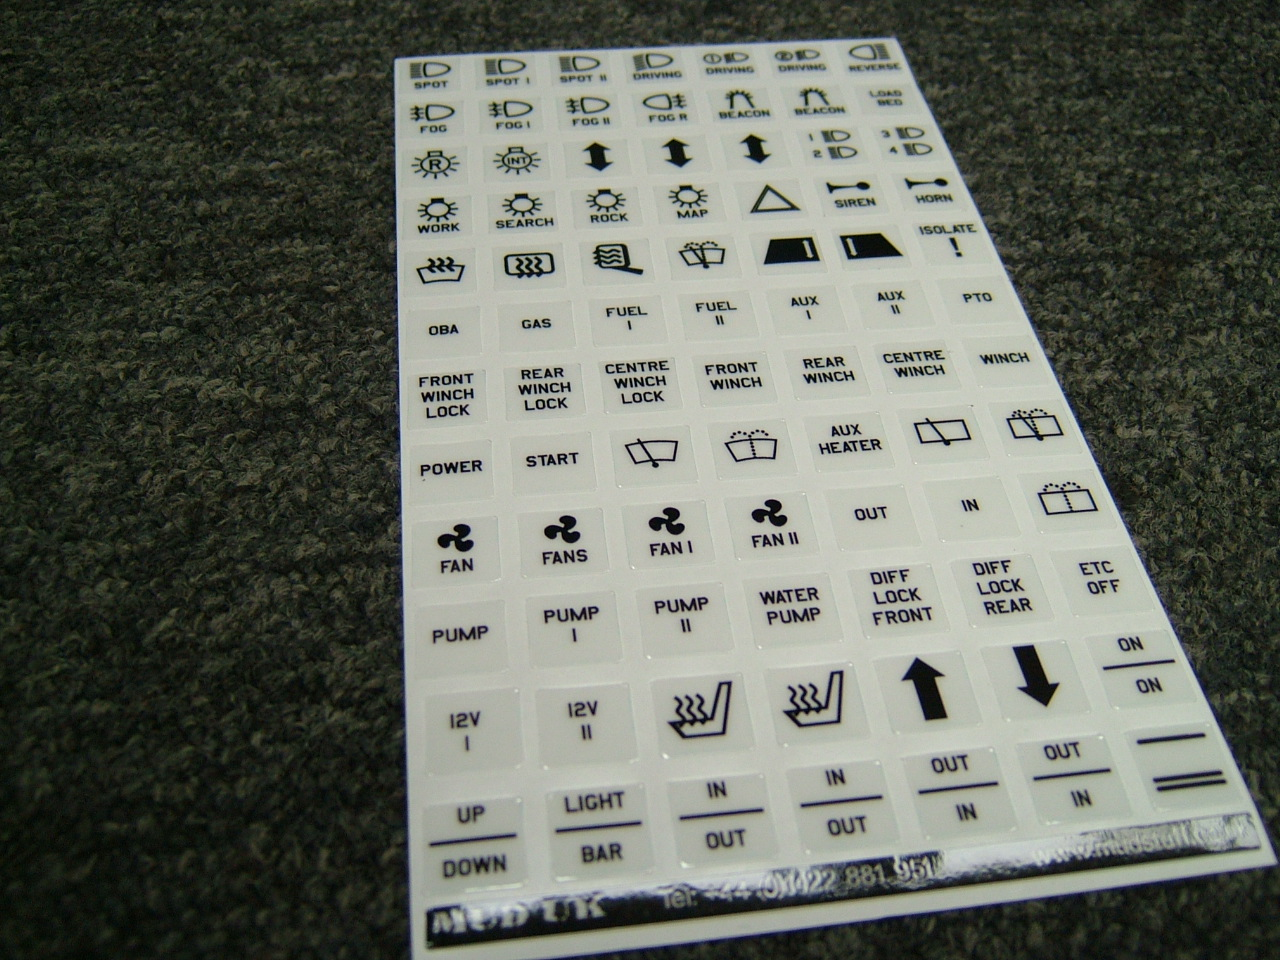 Legend Sheet for Carling Switches